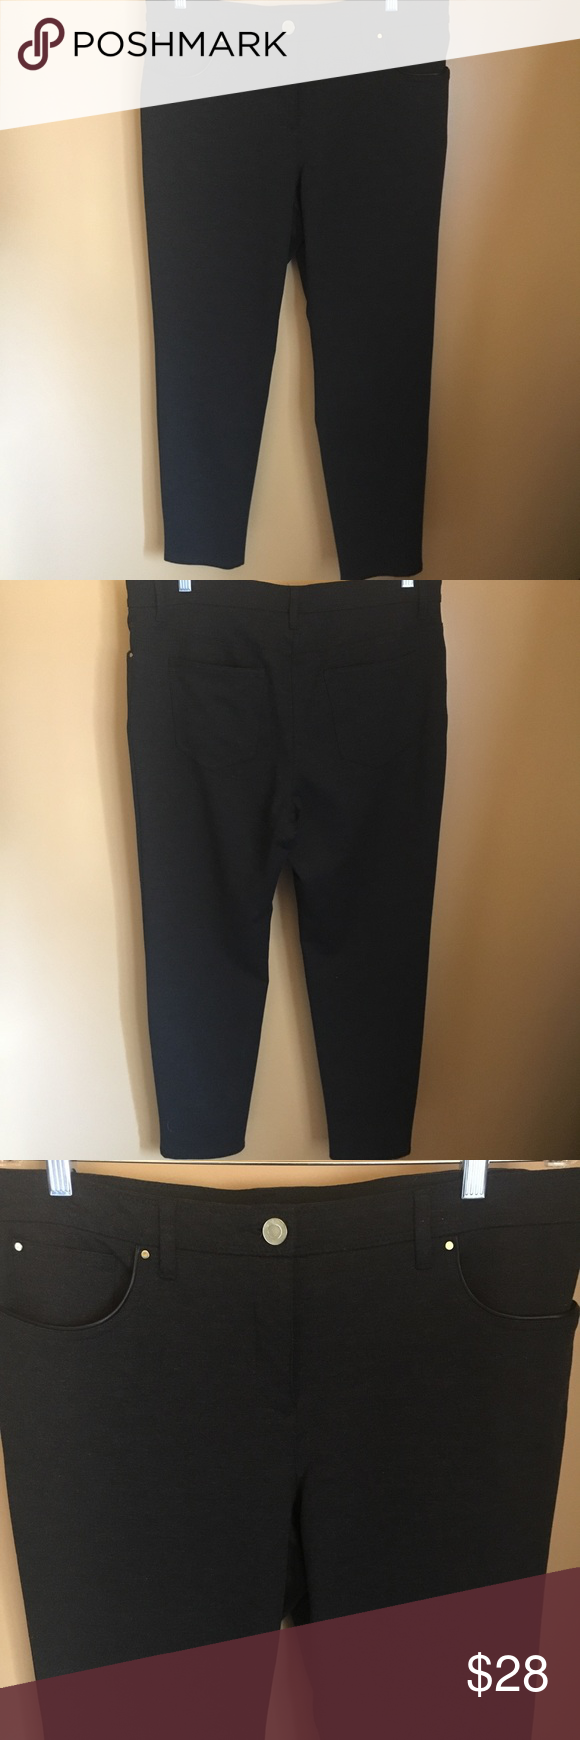 f8b5d26e08049 Chico's So Slimming charcoal leggings 1.5 short Perfect stretch. Dark  charcoal gray almost black pant. Front and back pockets Excellent condition  Front ...